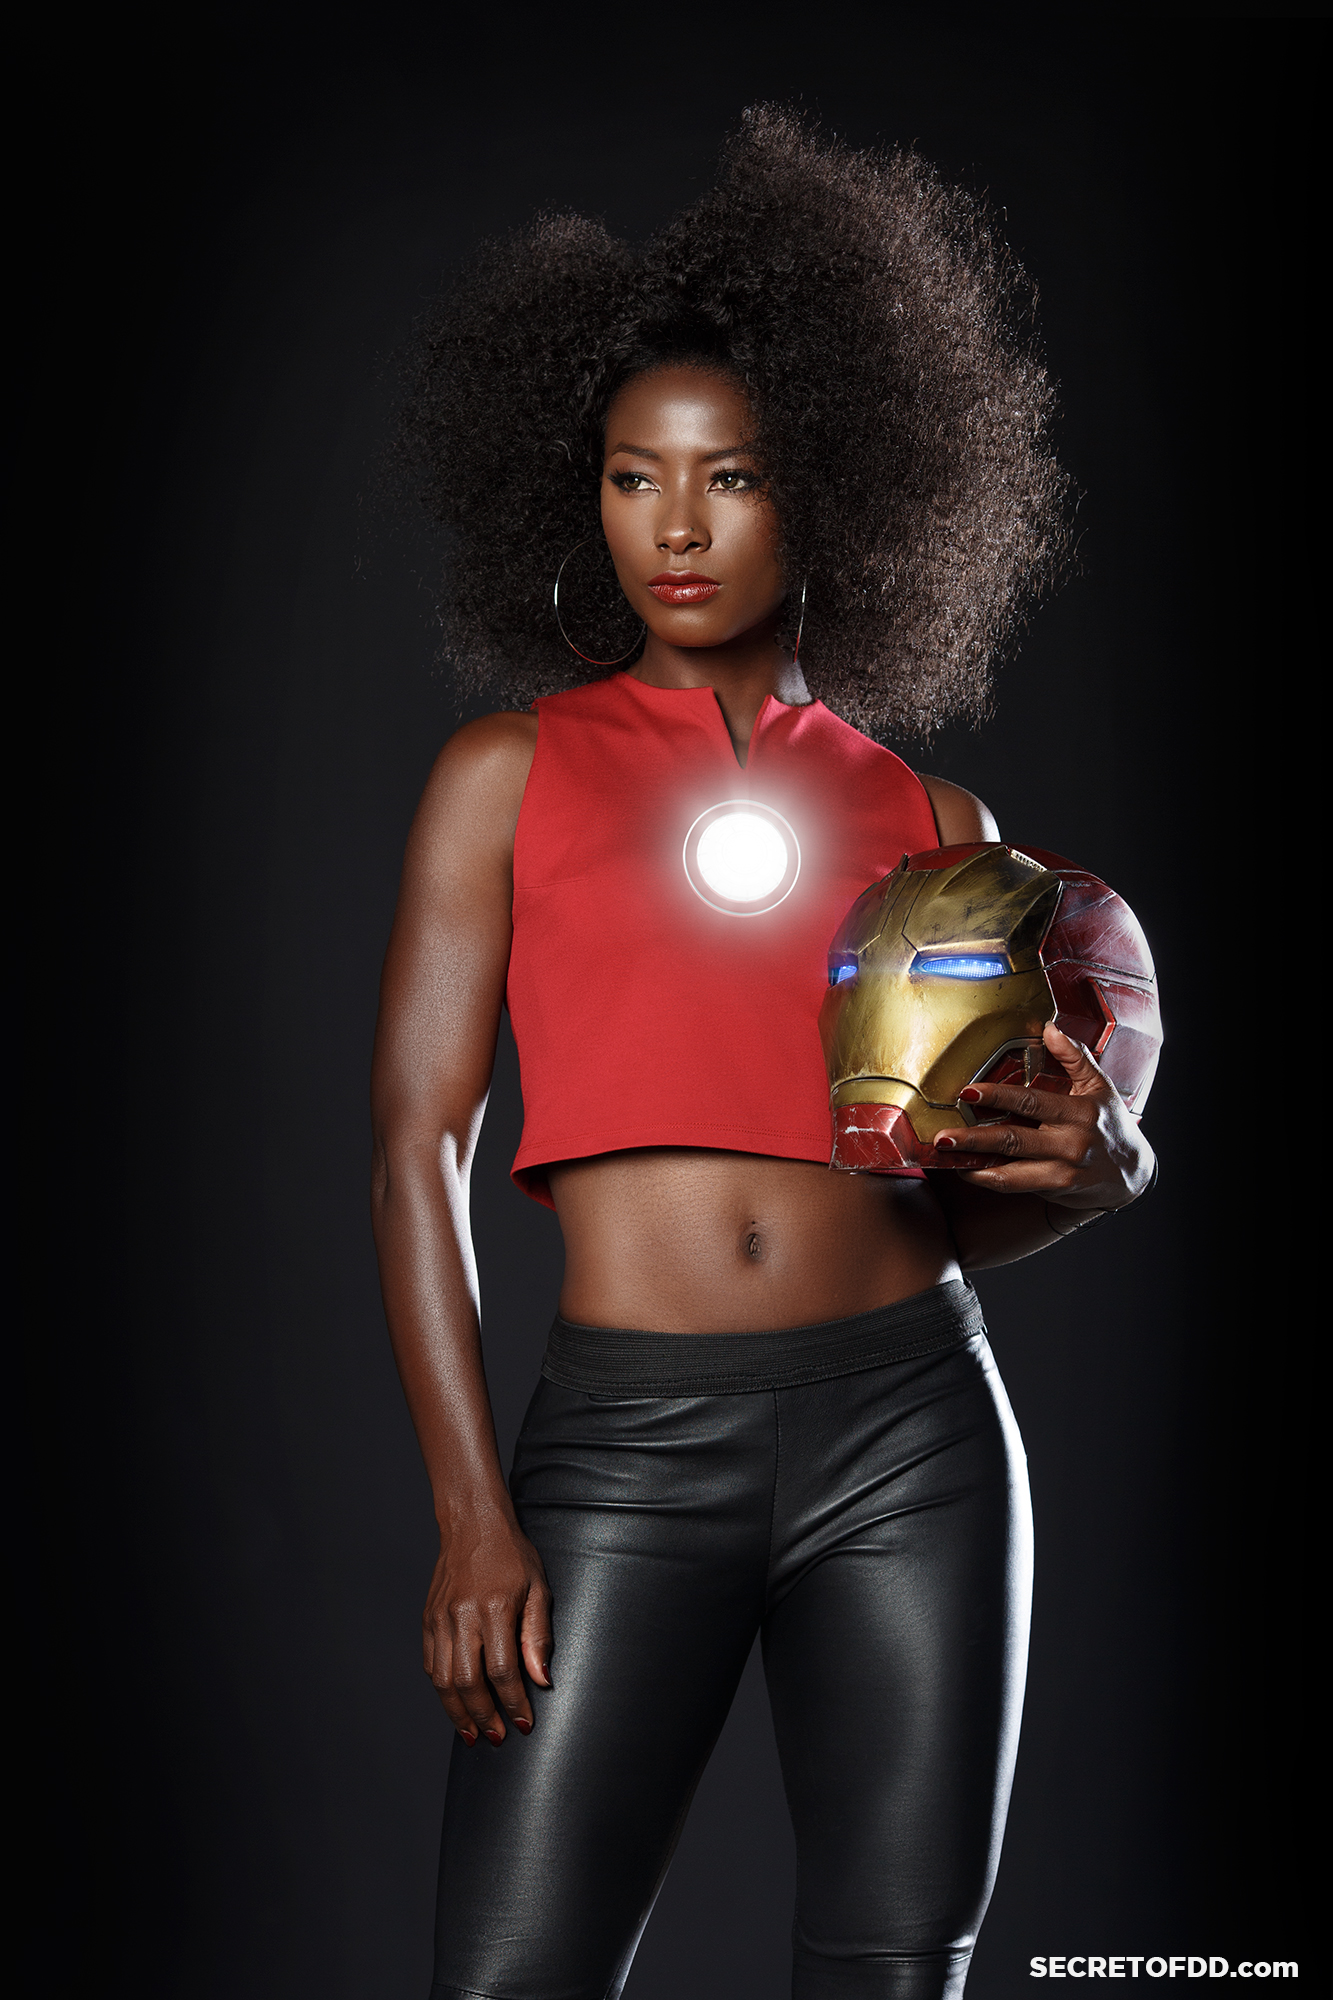 iron_man_riri_williams_deddeh_howard_raffael_dickreuter_ironheart_09